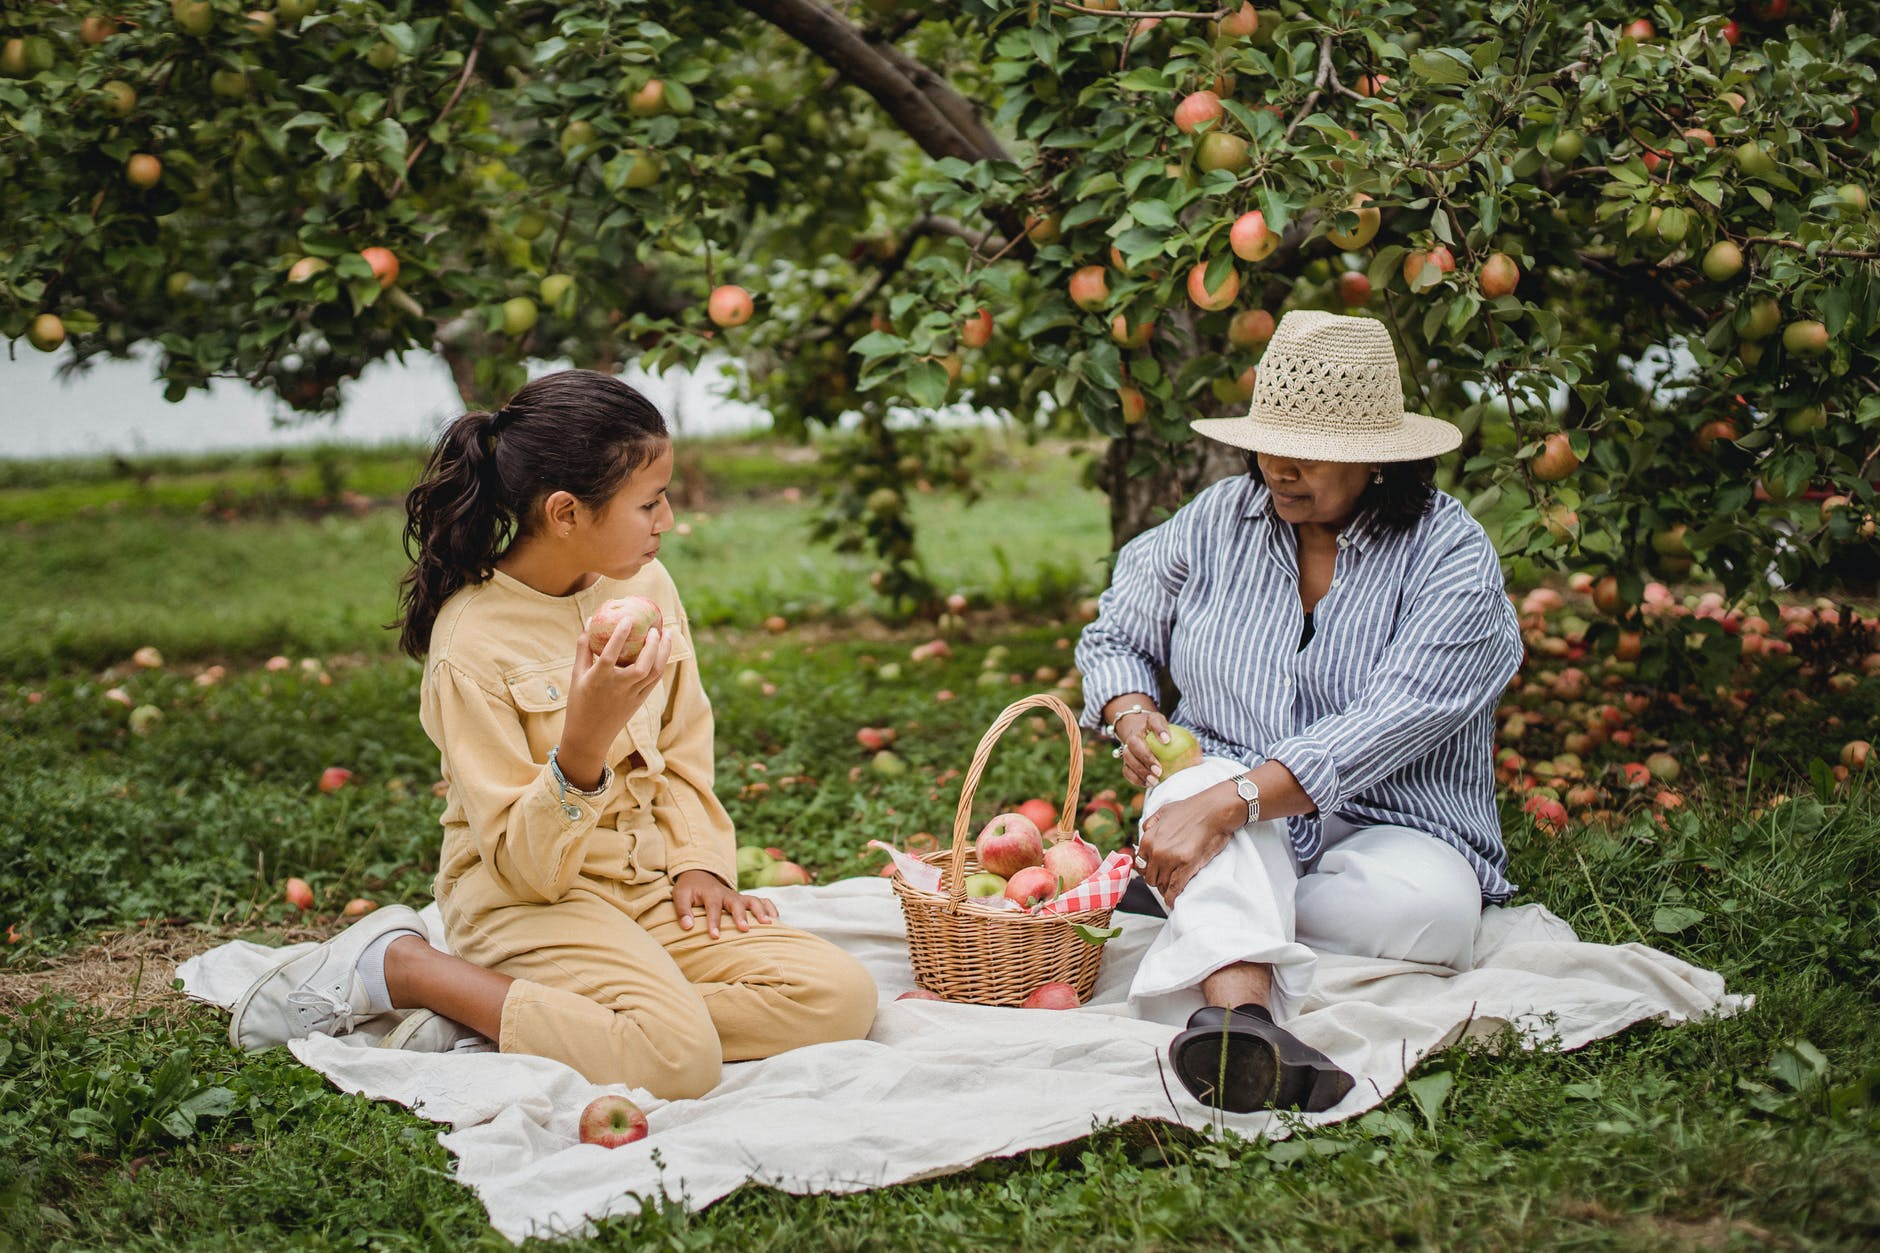 ethnic girl enjoying rest with mother in orchard